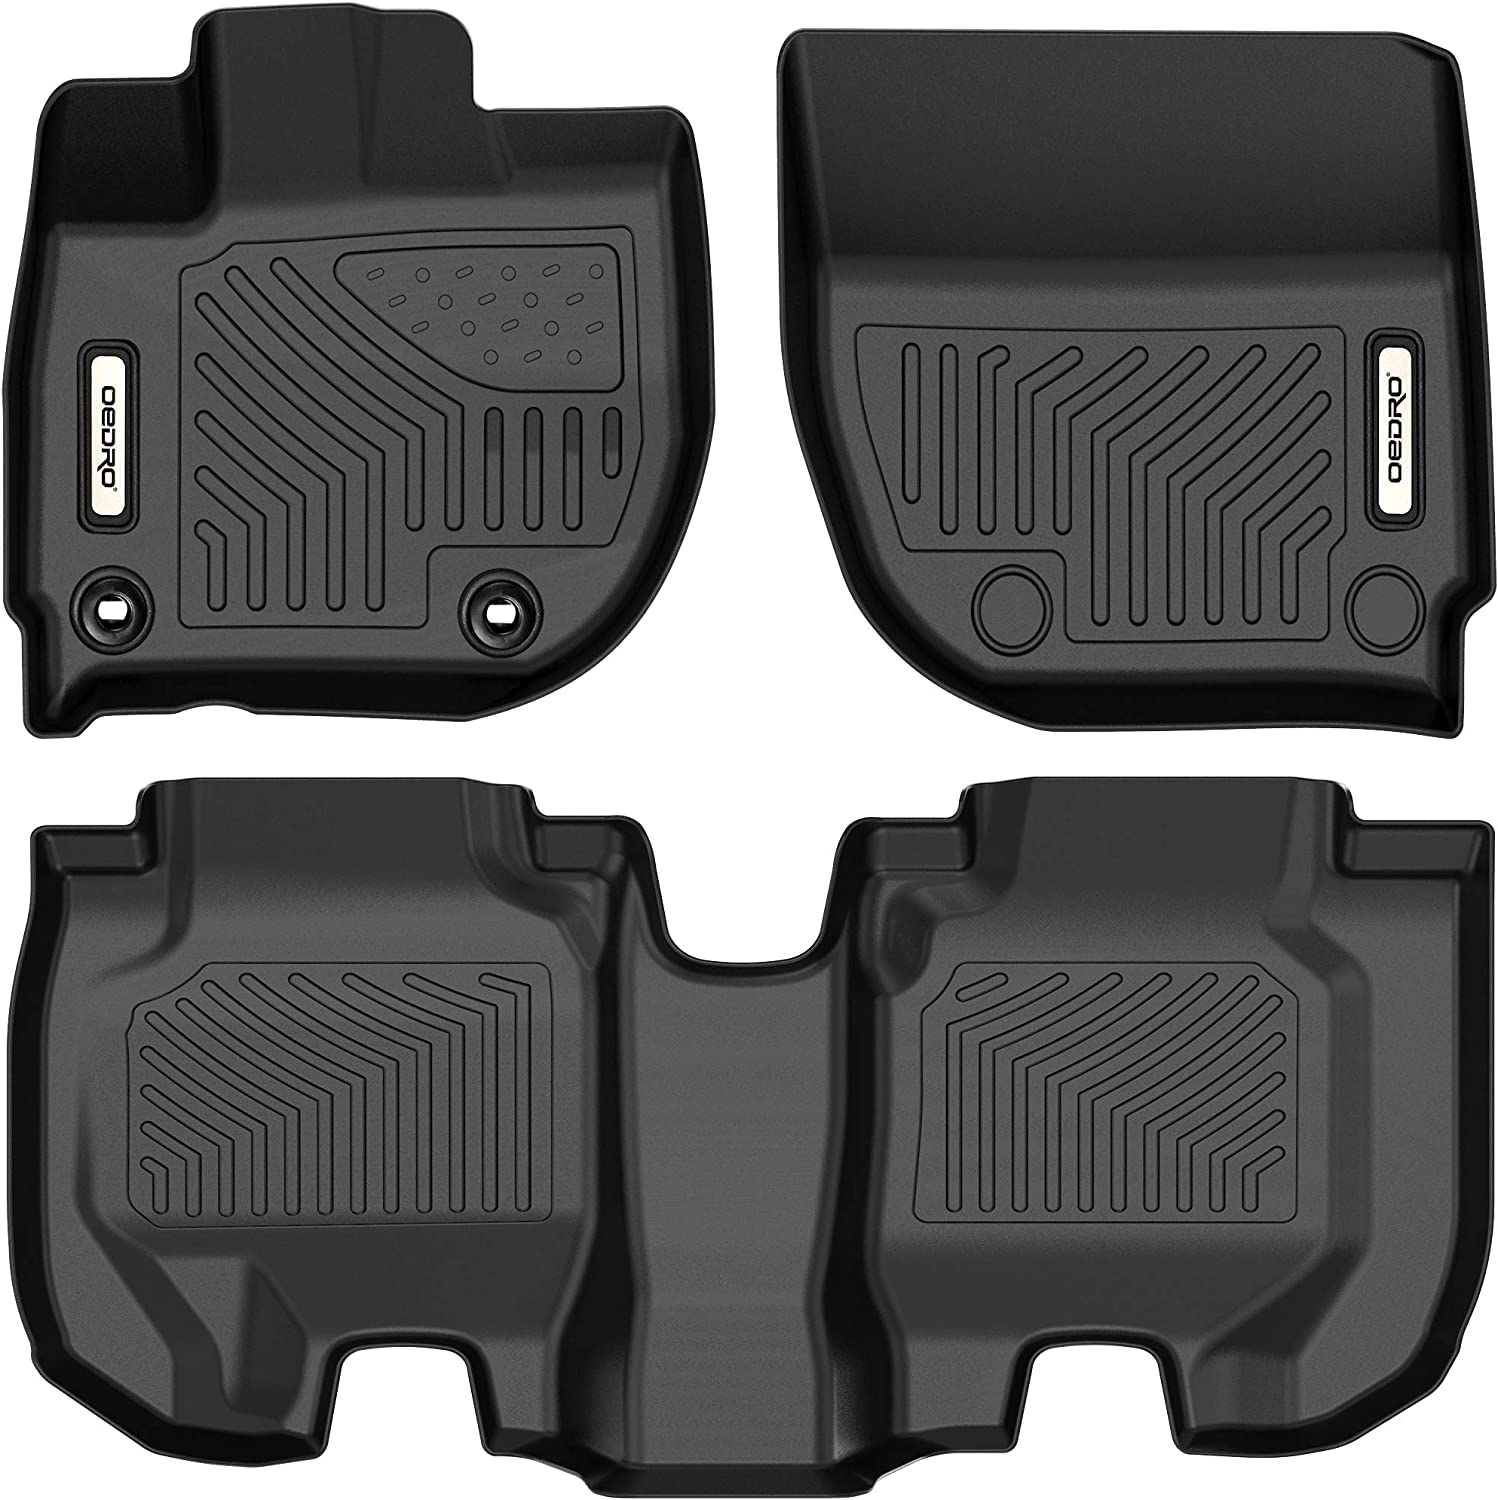 oEdRo Floor Mats Compatible with HR-V Honda 2016-2022 Limited NEW Special Price HRV Custo